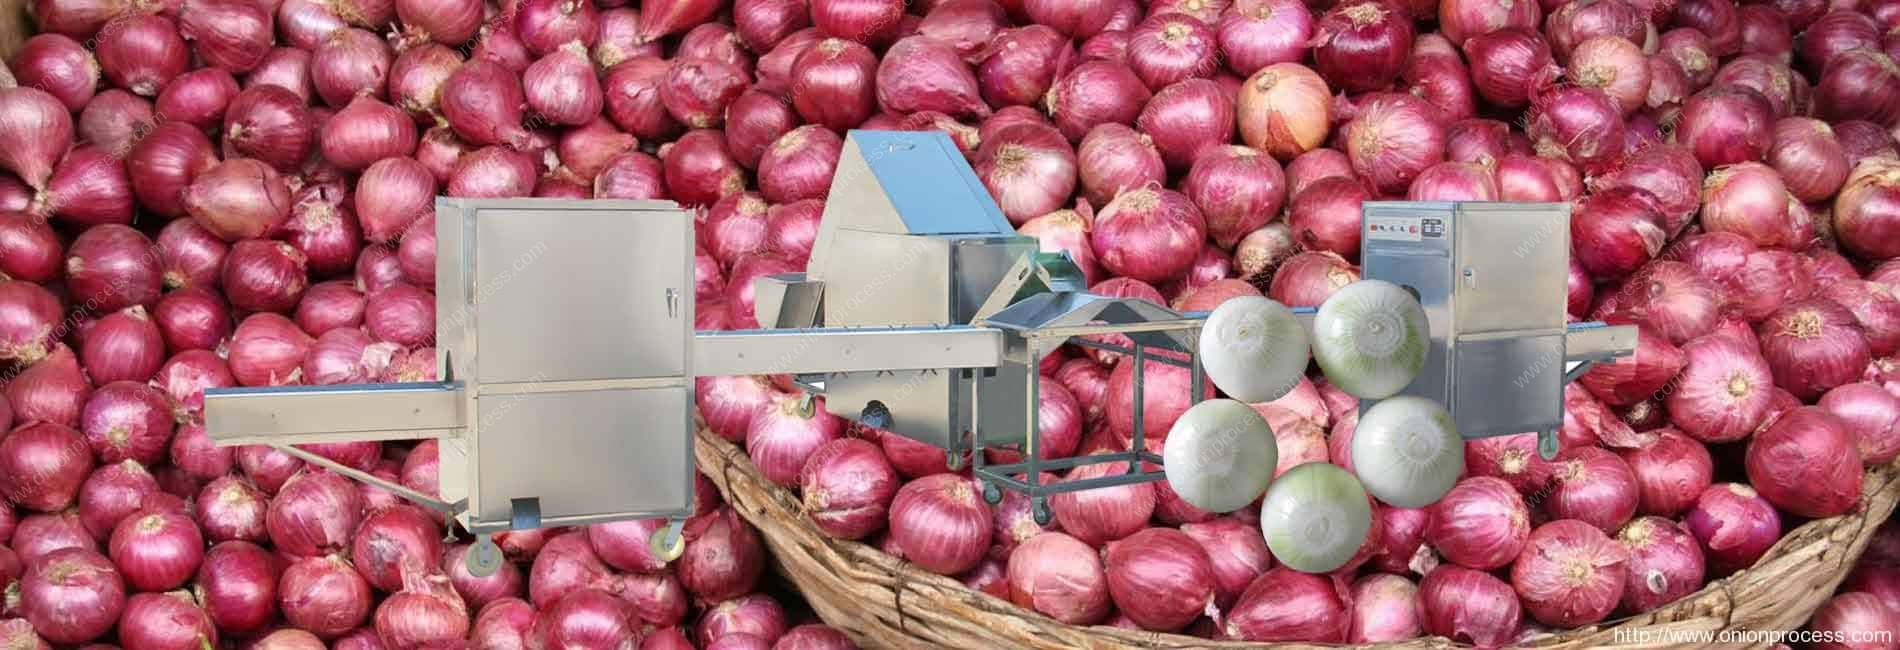 onion-peeling-and-root-cutting-processing-line